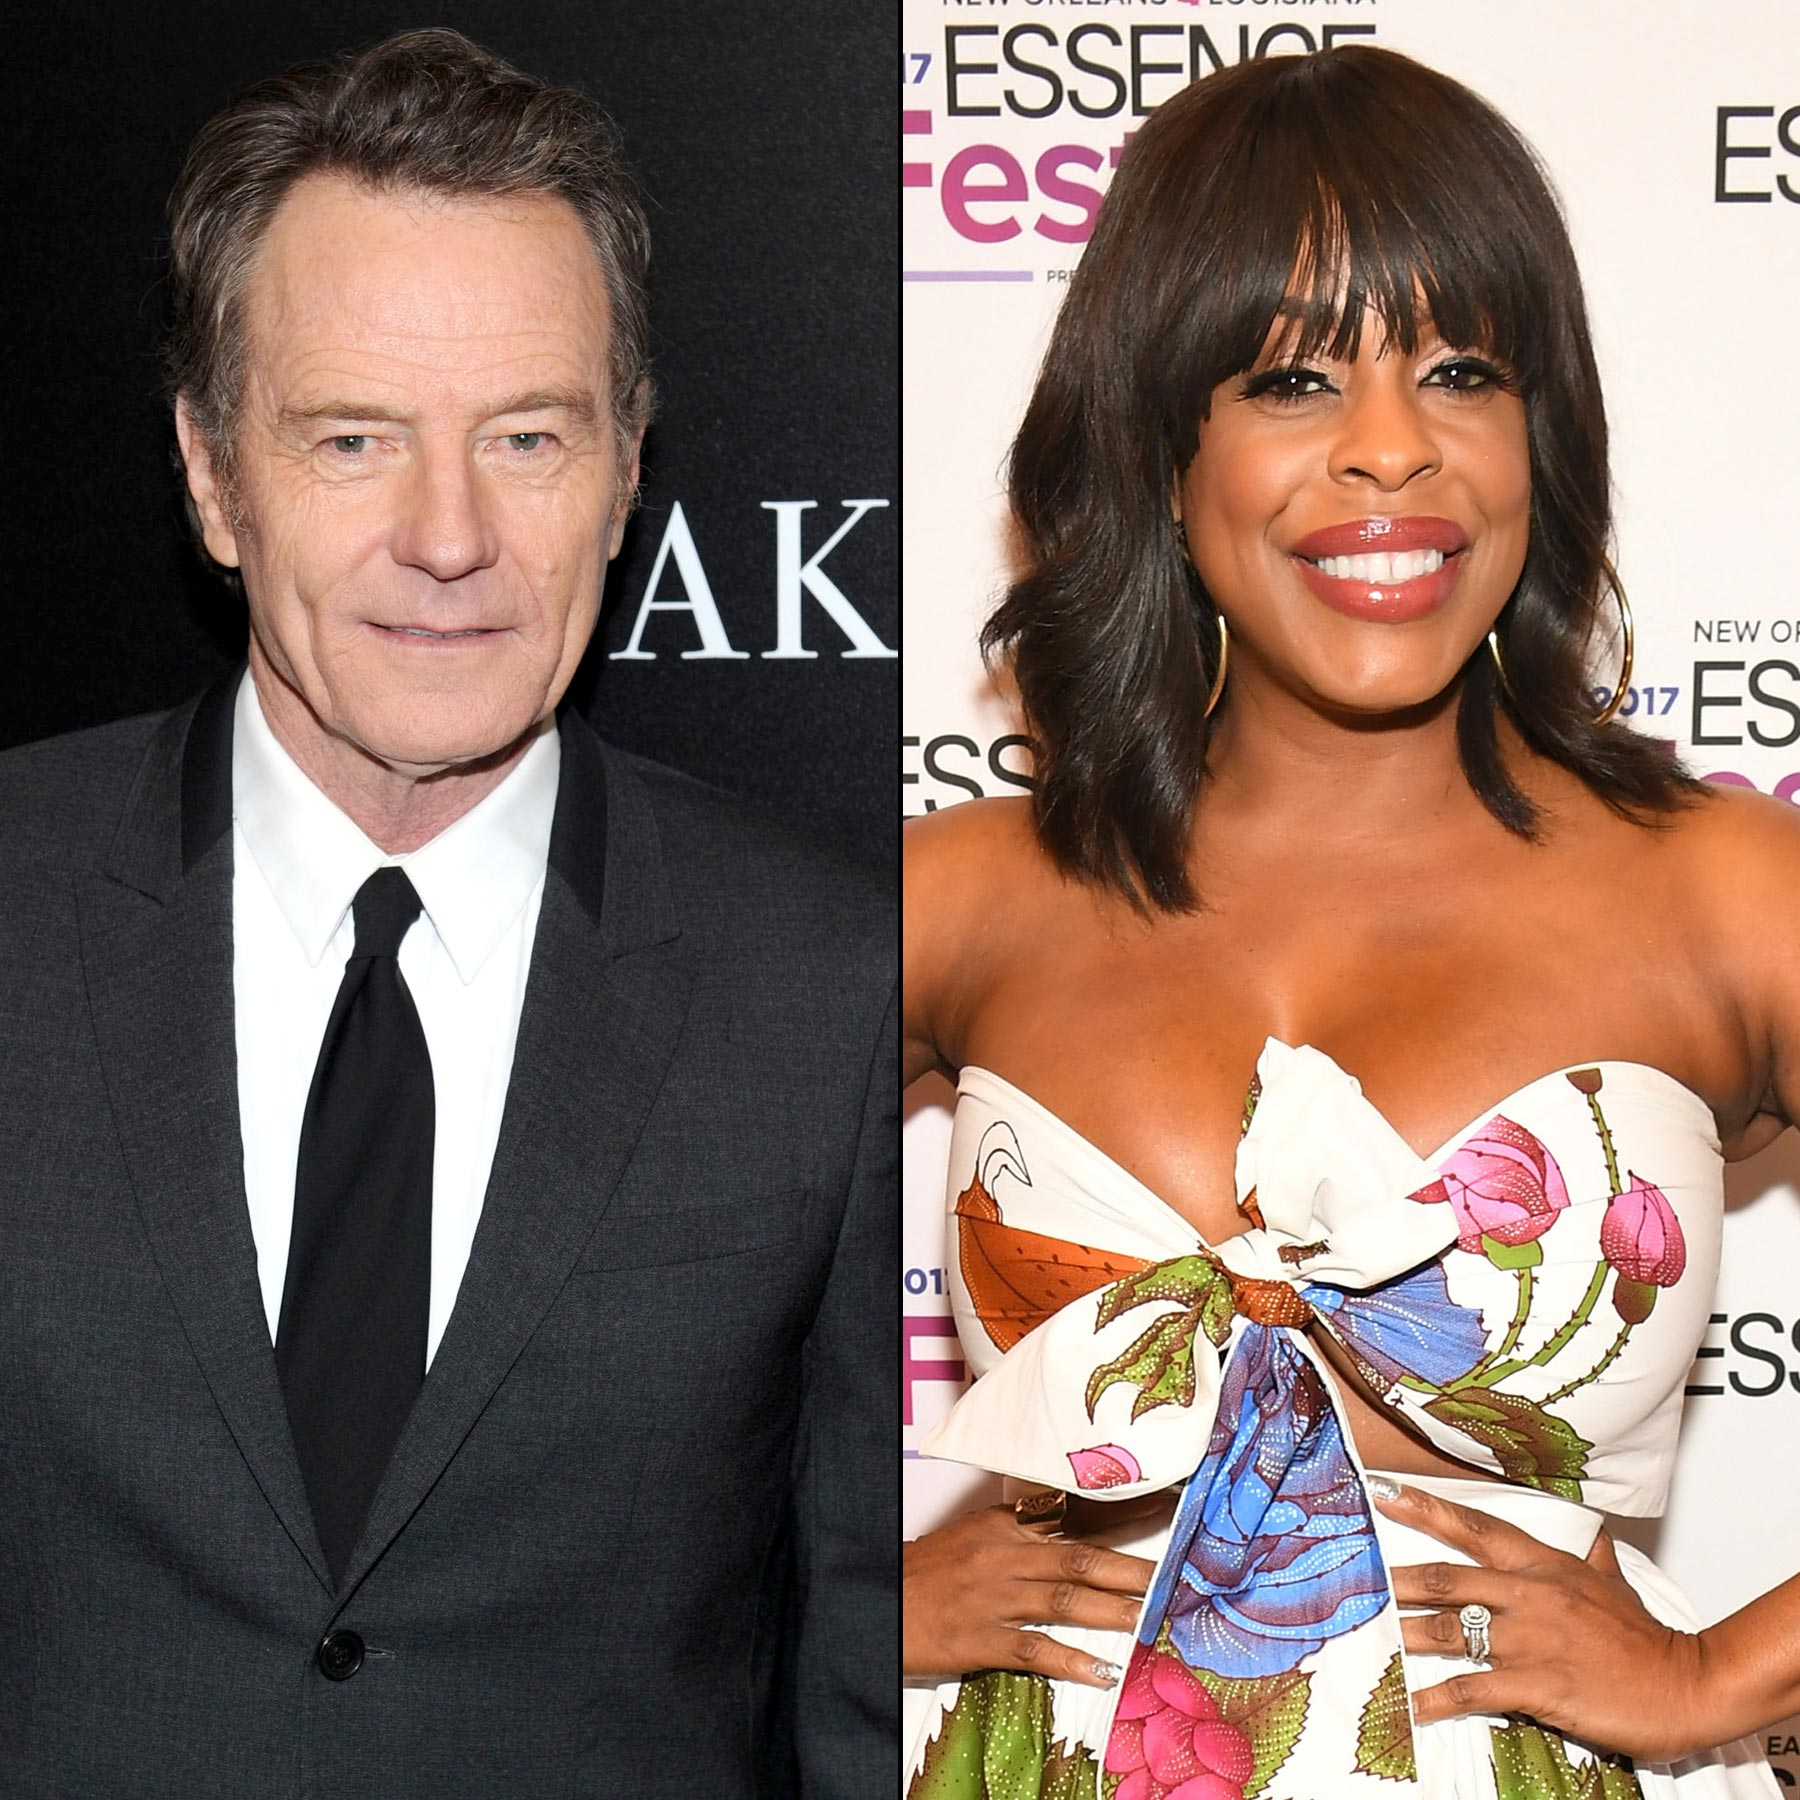 Family Guy Bryan Cranston Niecy Nash To Play Peter S New Bosses Ew Com The book covers many key things that have happened in good old it takes a village idiot, and i married one by cherry chevapravatdumrong and alex borstein (2007, trade paperback). family guy bryan cranston niecy nash